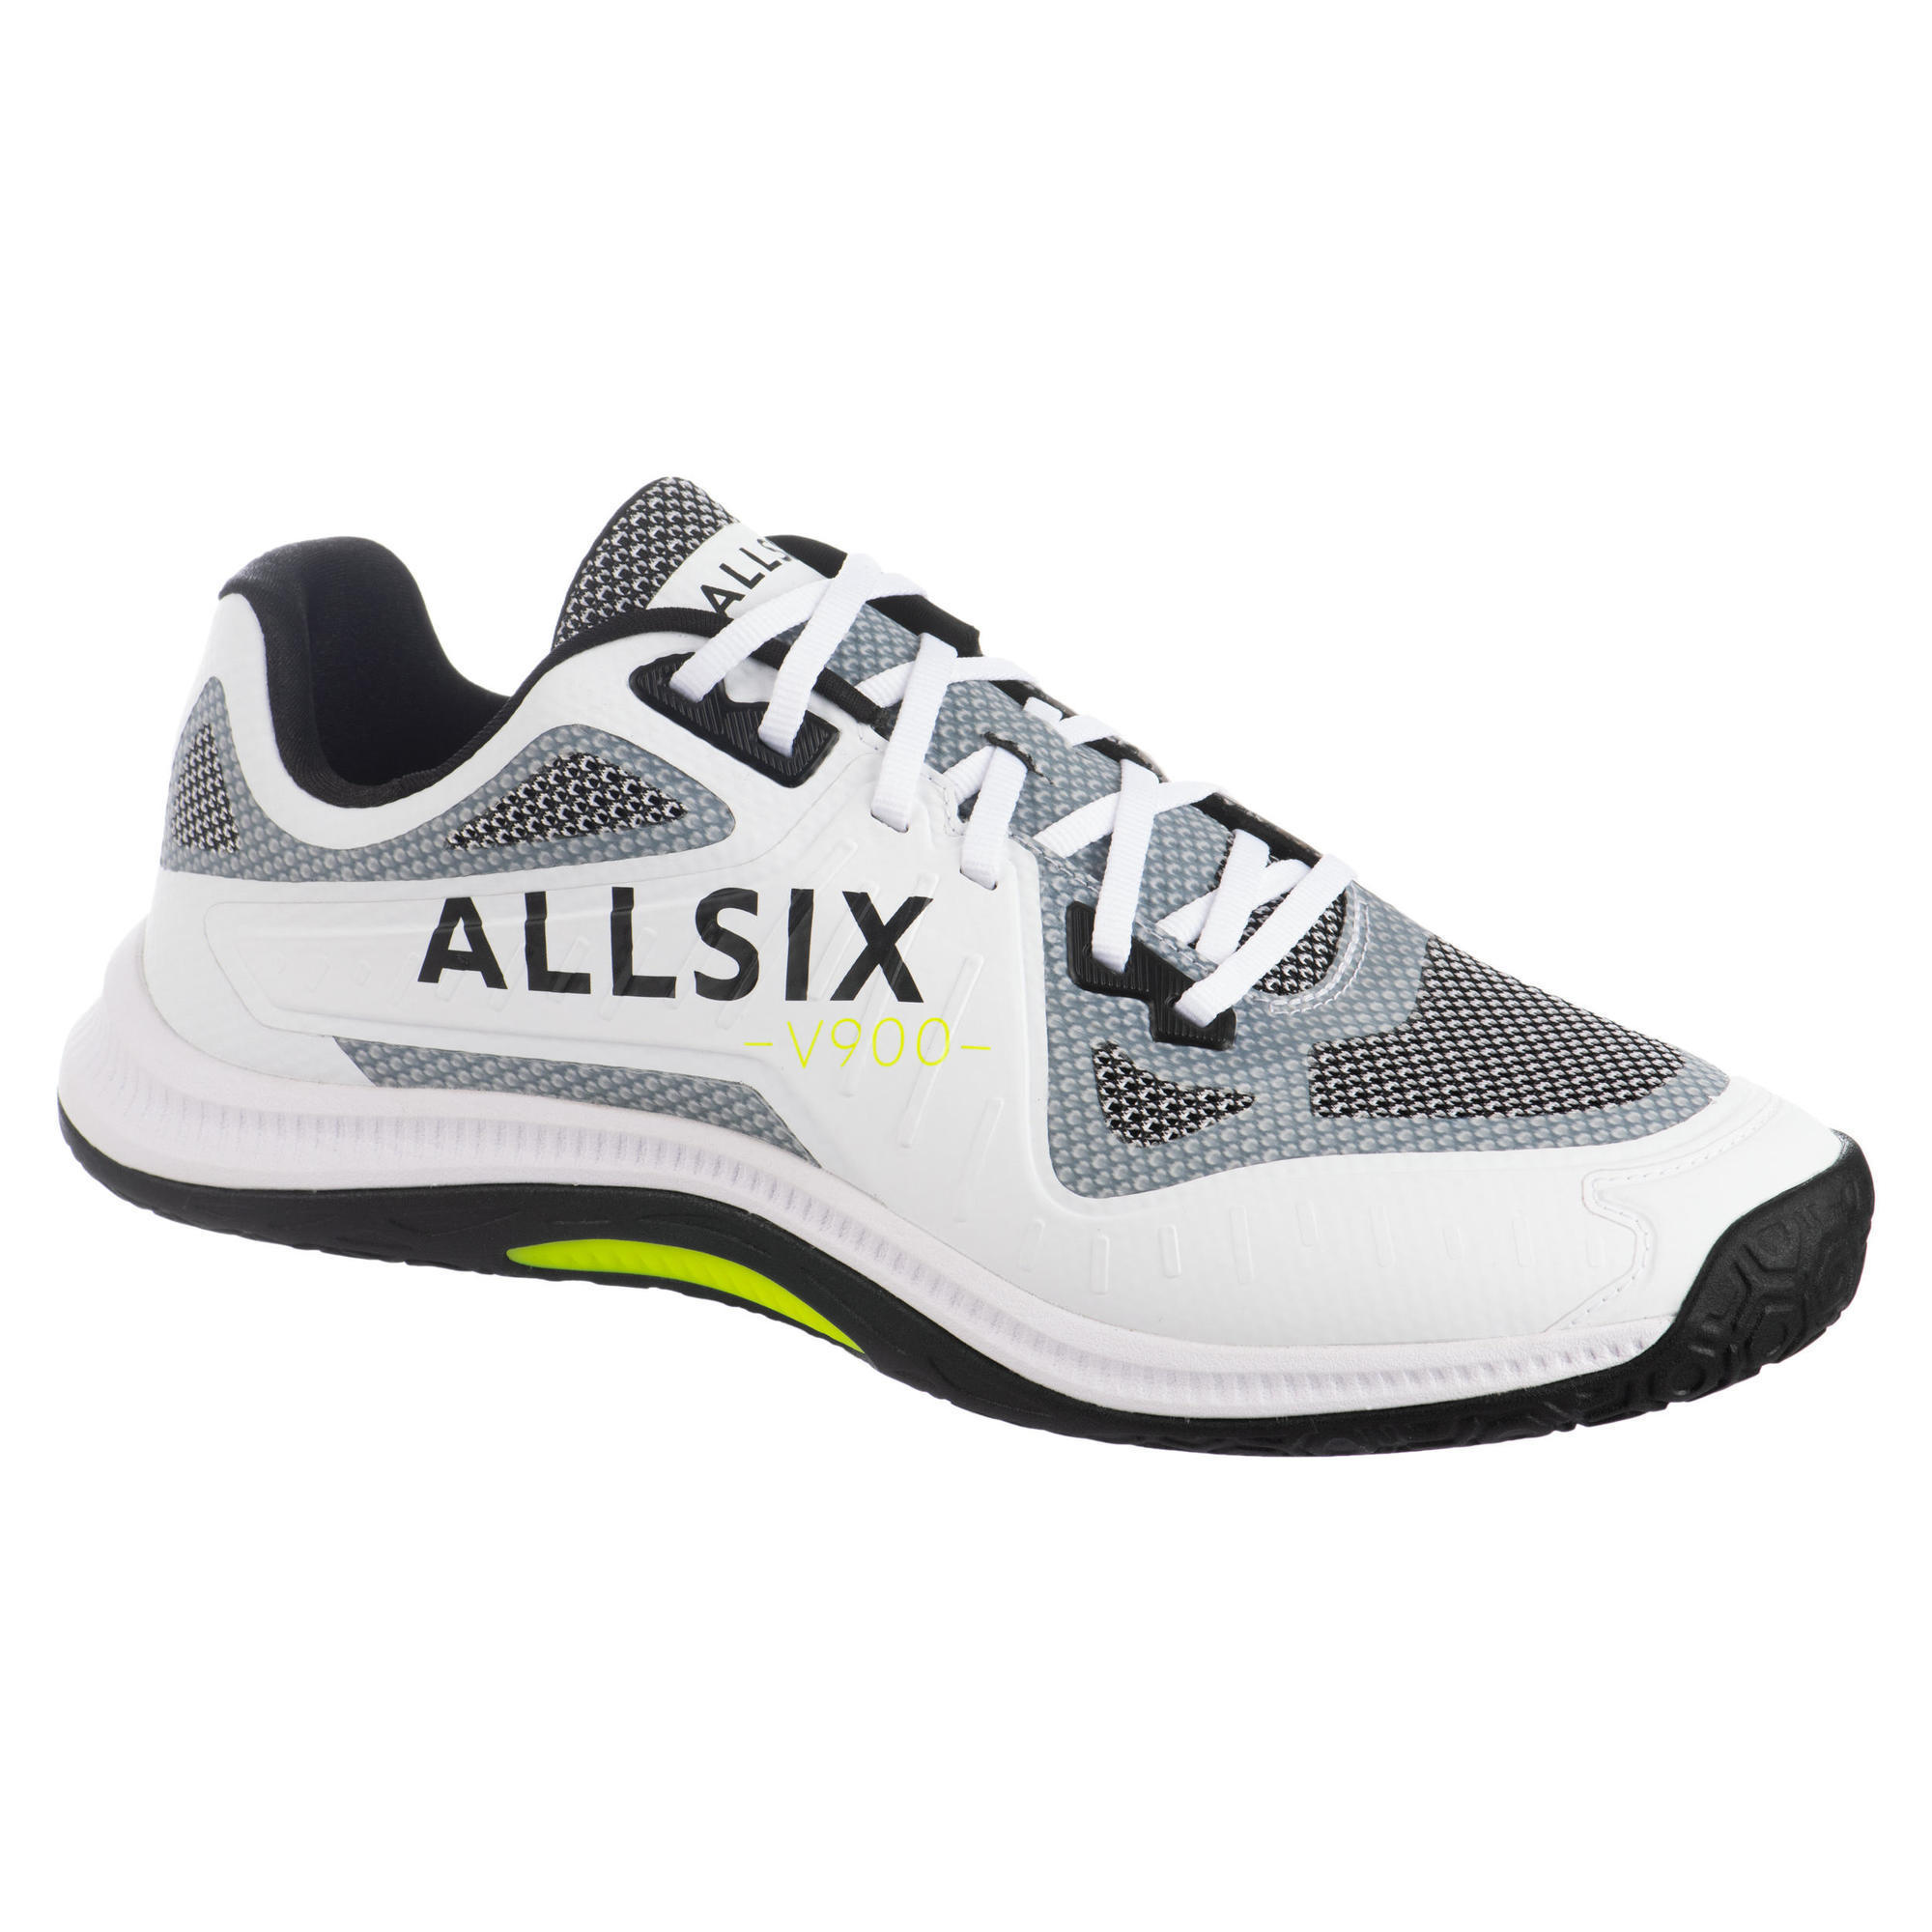 Volleyball Shoes | Volleyball Trainers